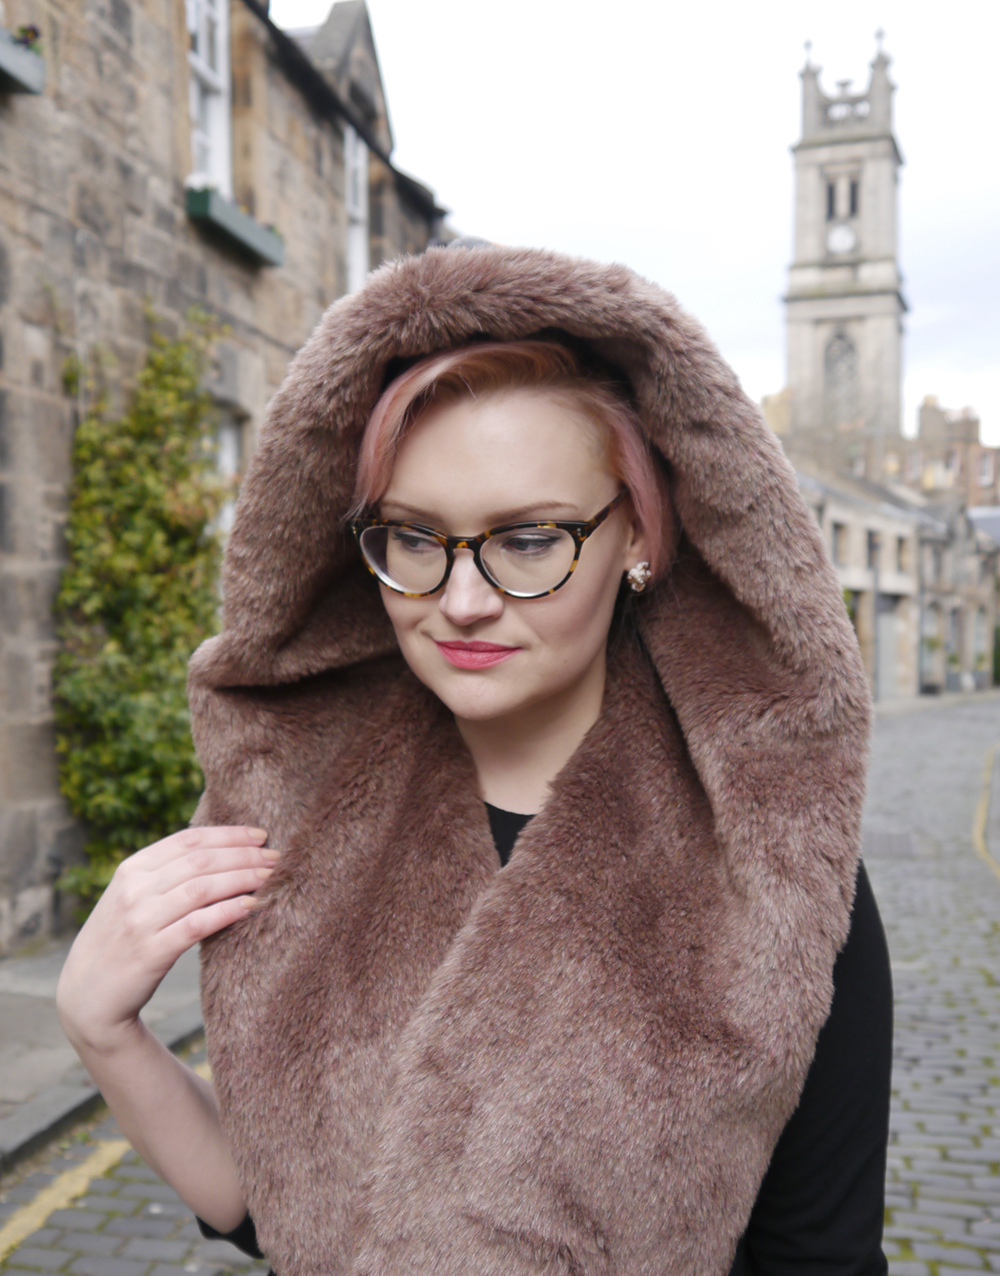 limited edition Chouchou Hollywood hood, #HOODSTYLIN, #HOODGIRLS, Dione Bowlt ceramic earrings, Stockbridge best streets, Edinburgh street style, natural light blog photography, candyfloss hair DIY, IOLLA Muir glasses in tortoise shell